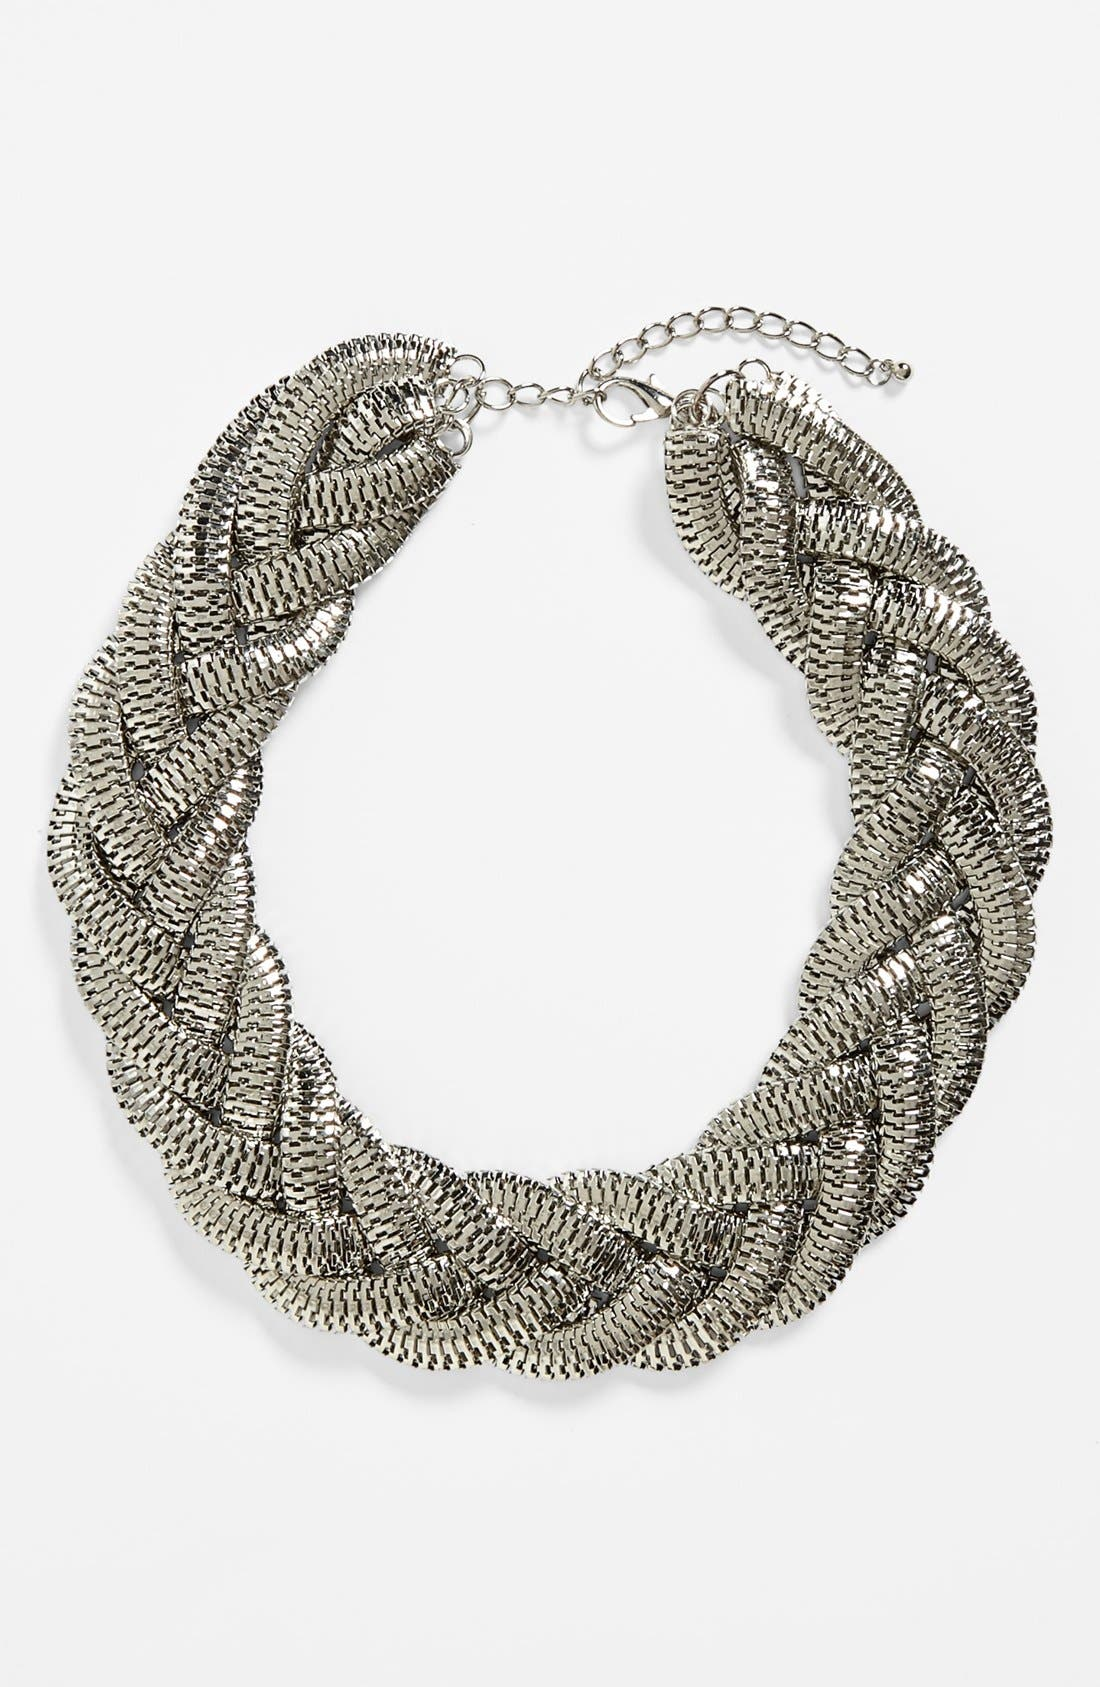 Alternate Image 1 Selected - Kool Konnections Braided Chain Collar Necklace (Juniors) (Online Only)